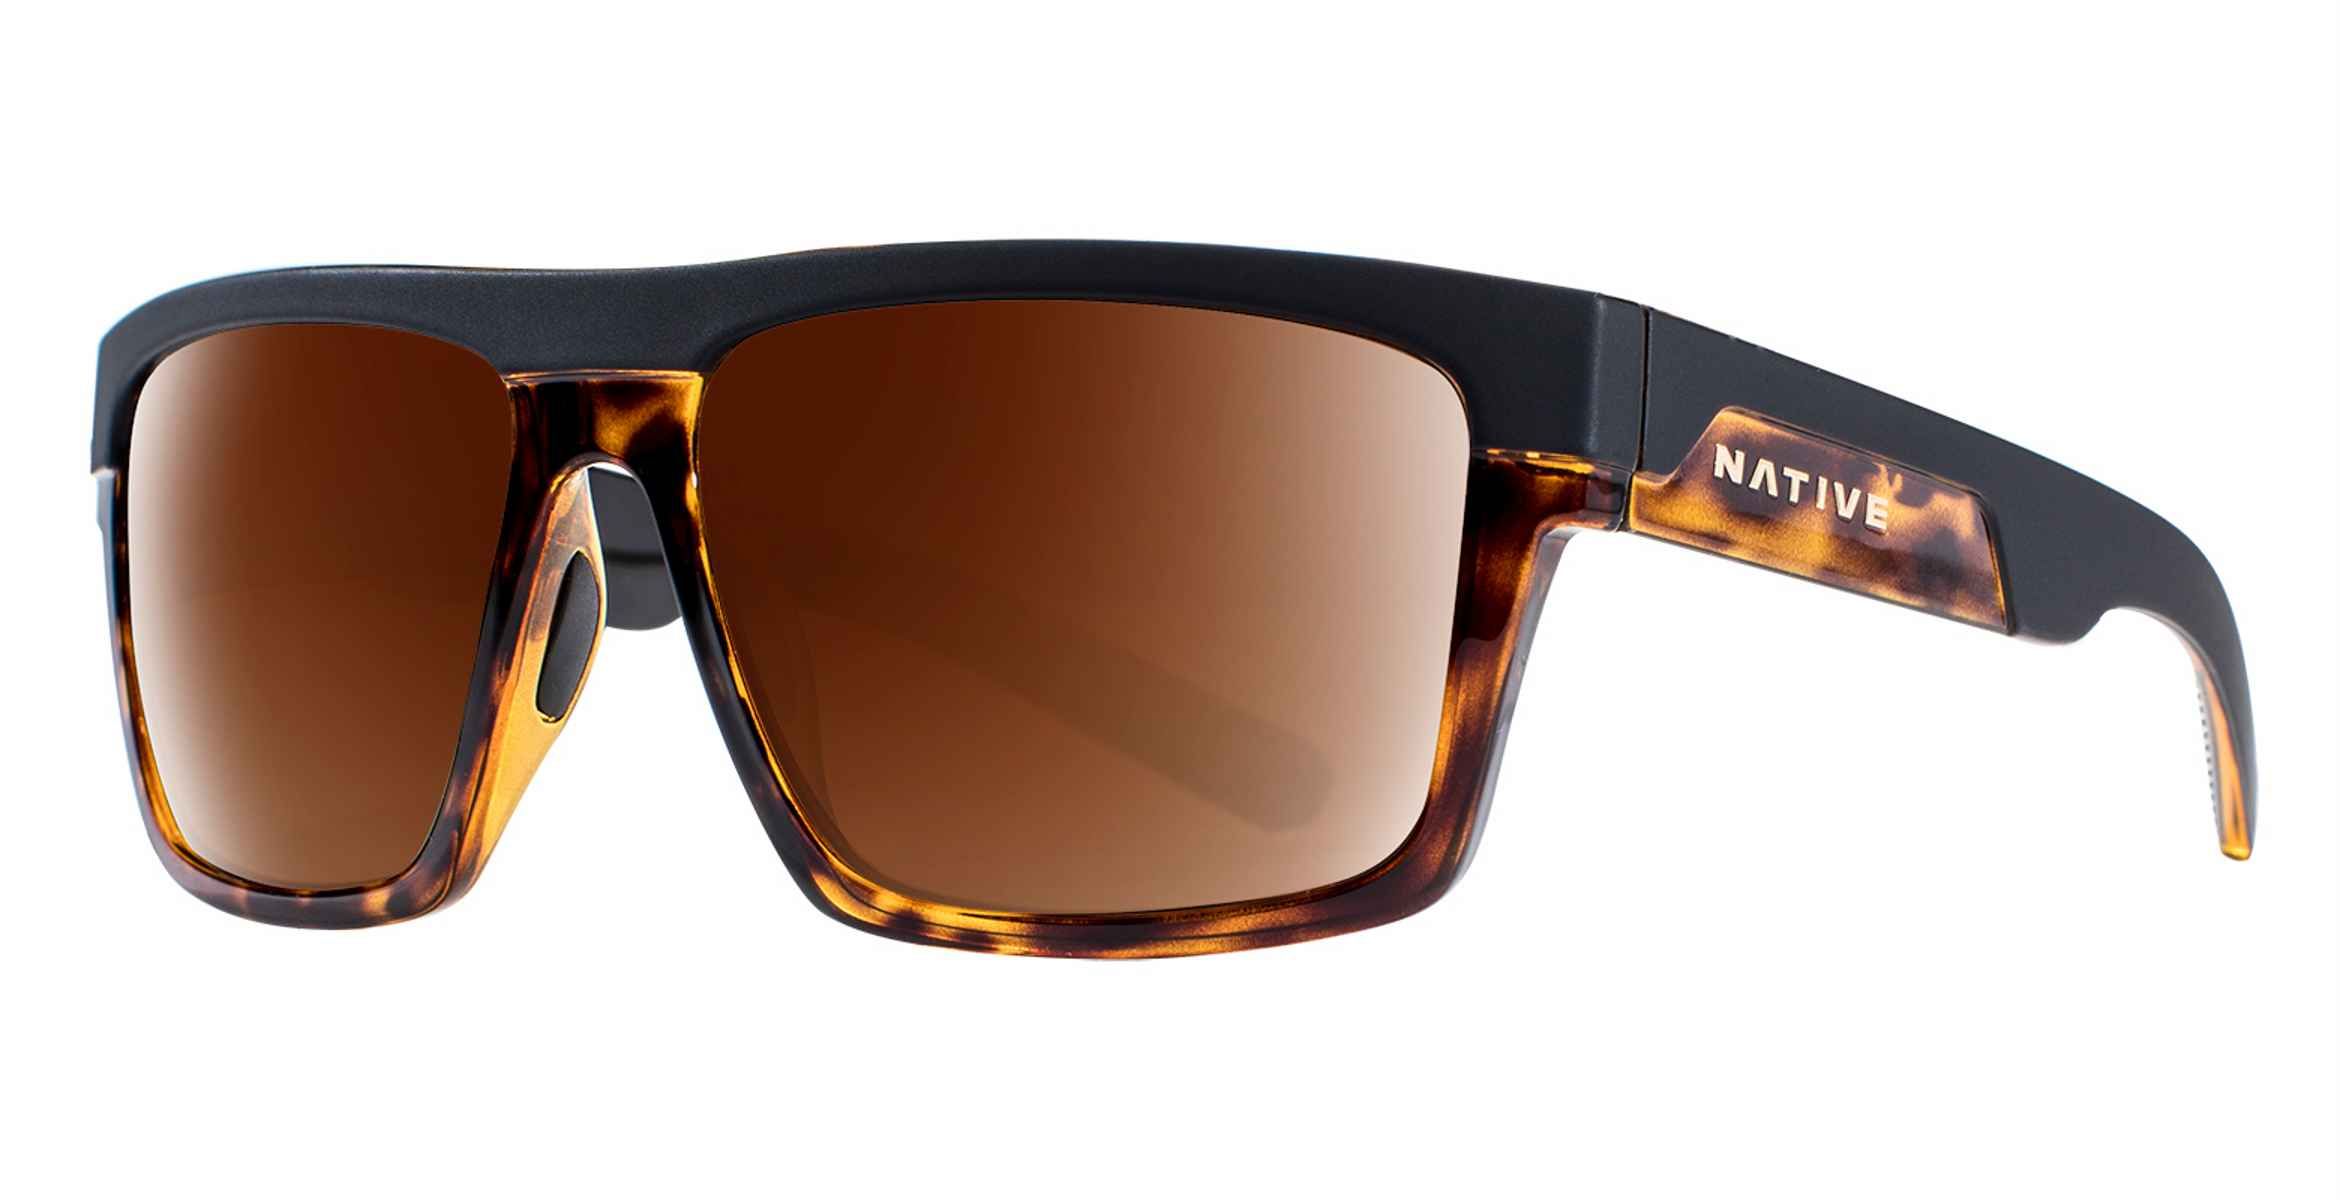 c4f5006ec11 Native Eyewear Sunglasses El Jefe Matte Black Shiny Dark Tortoise Pol N3  Brown - 191 924 524